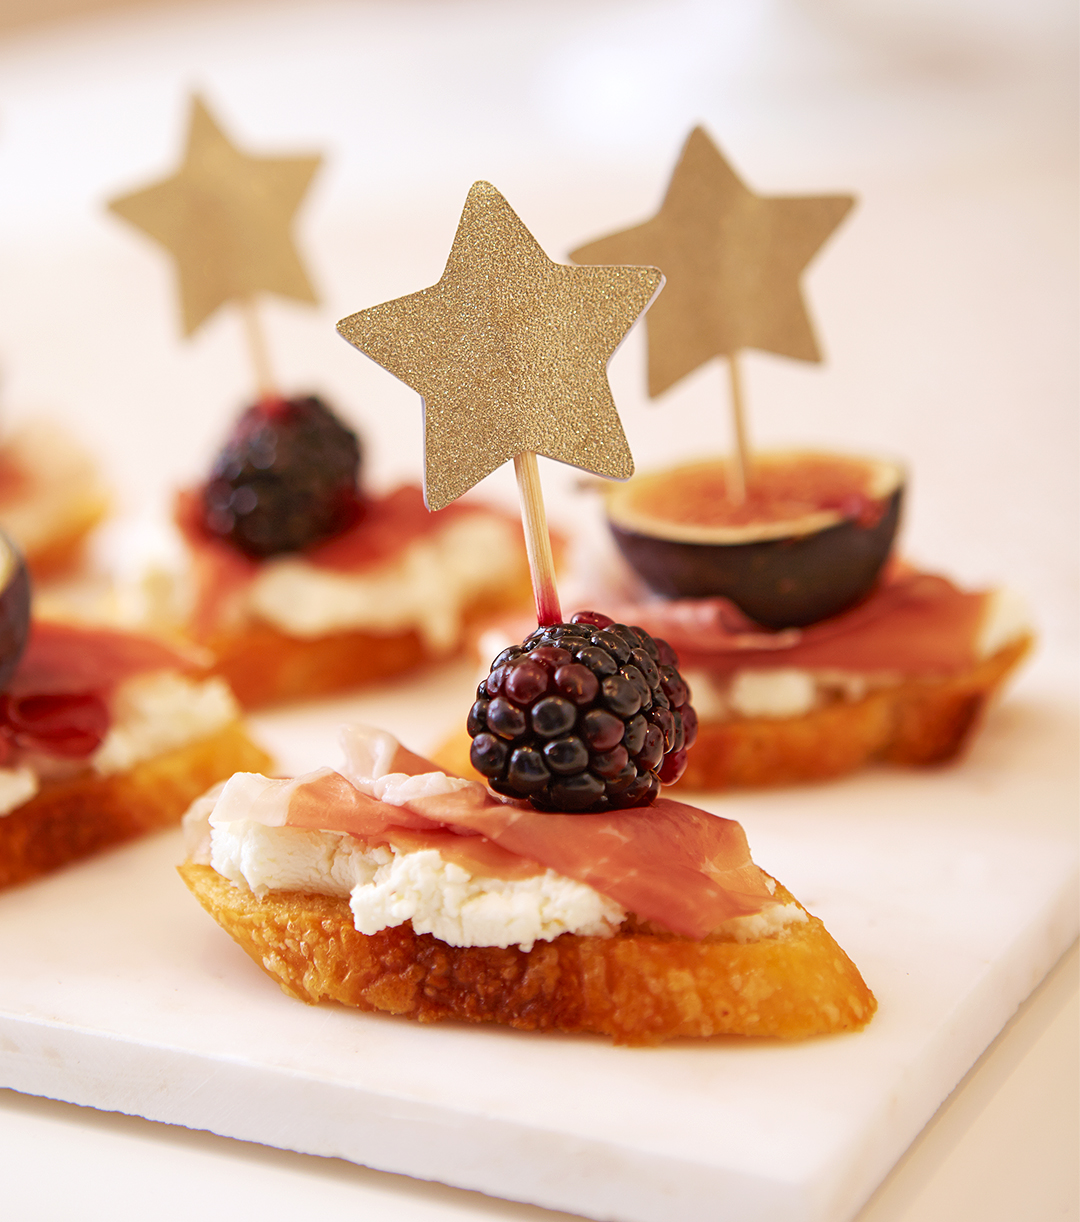 bruchetta appetizers on cutting board with stars garnish